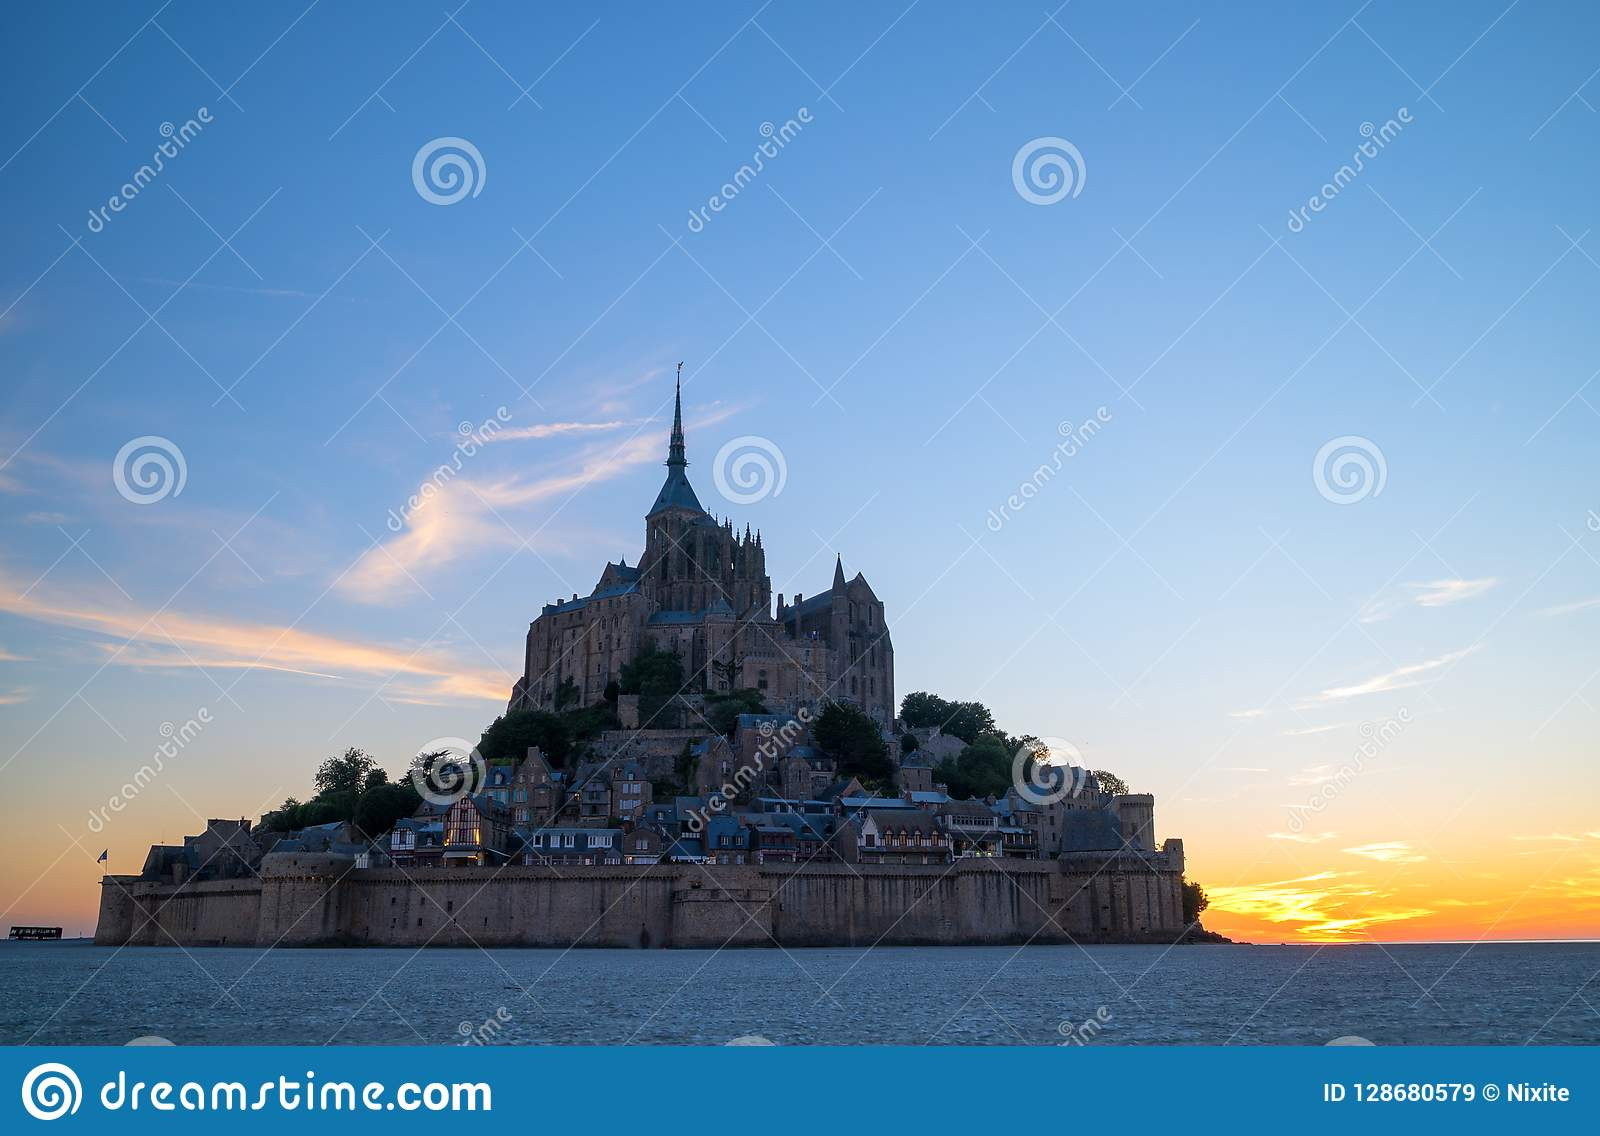 Amazing view of Mont Saint-Michel castle at sunset time. Normandy